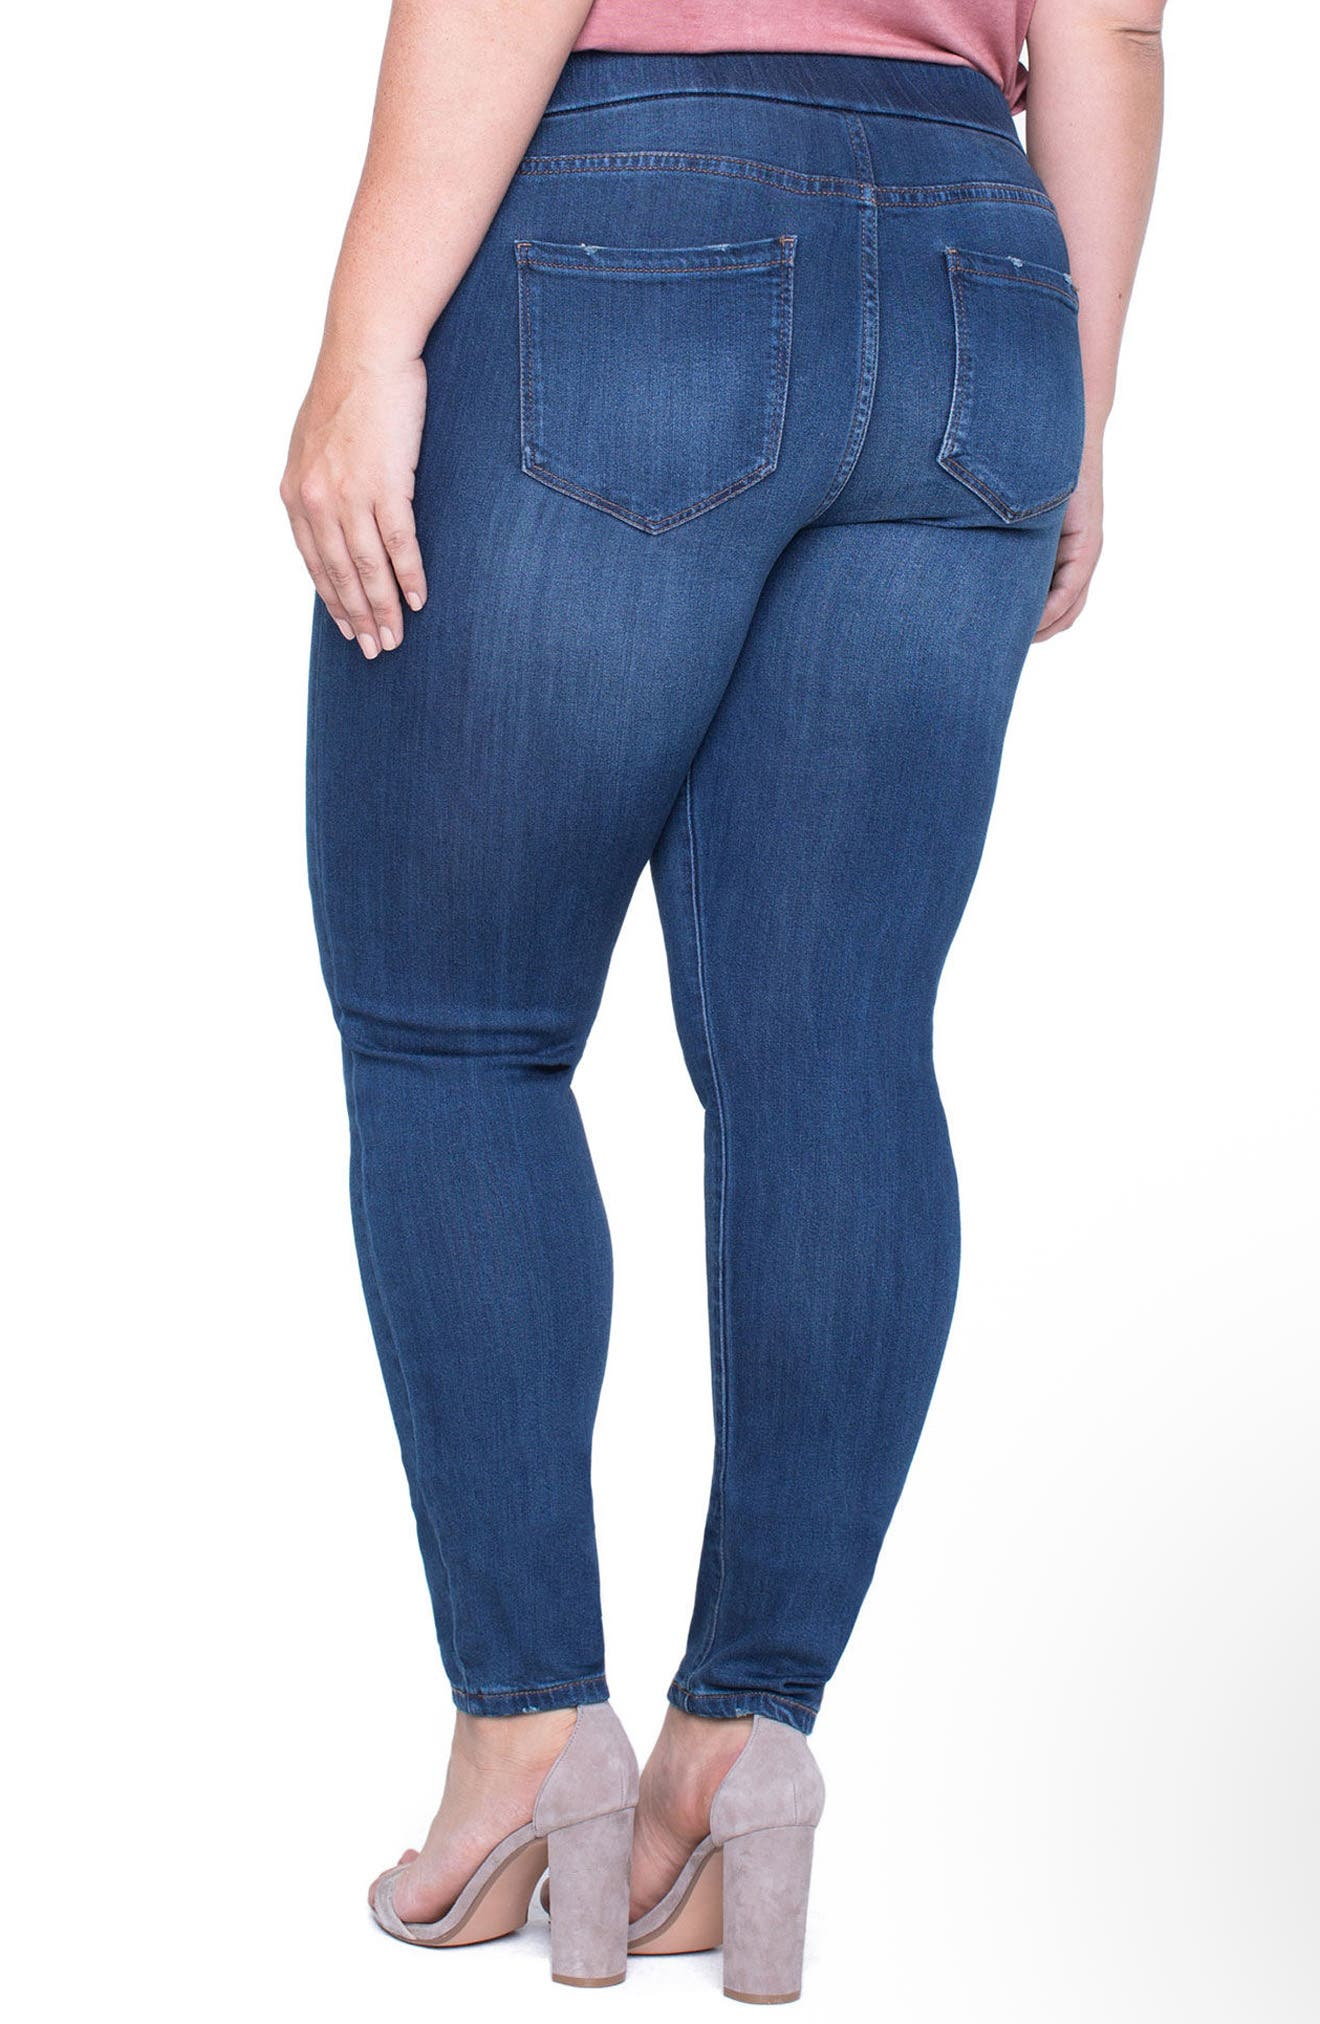 Alternate Image 2  - Liverpool Jeans Company Sienna Knit Denim Leggings (Plus Size)